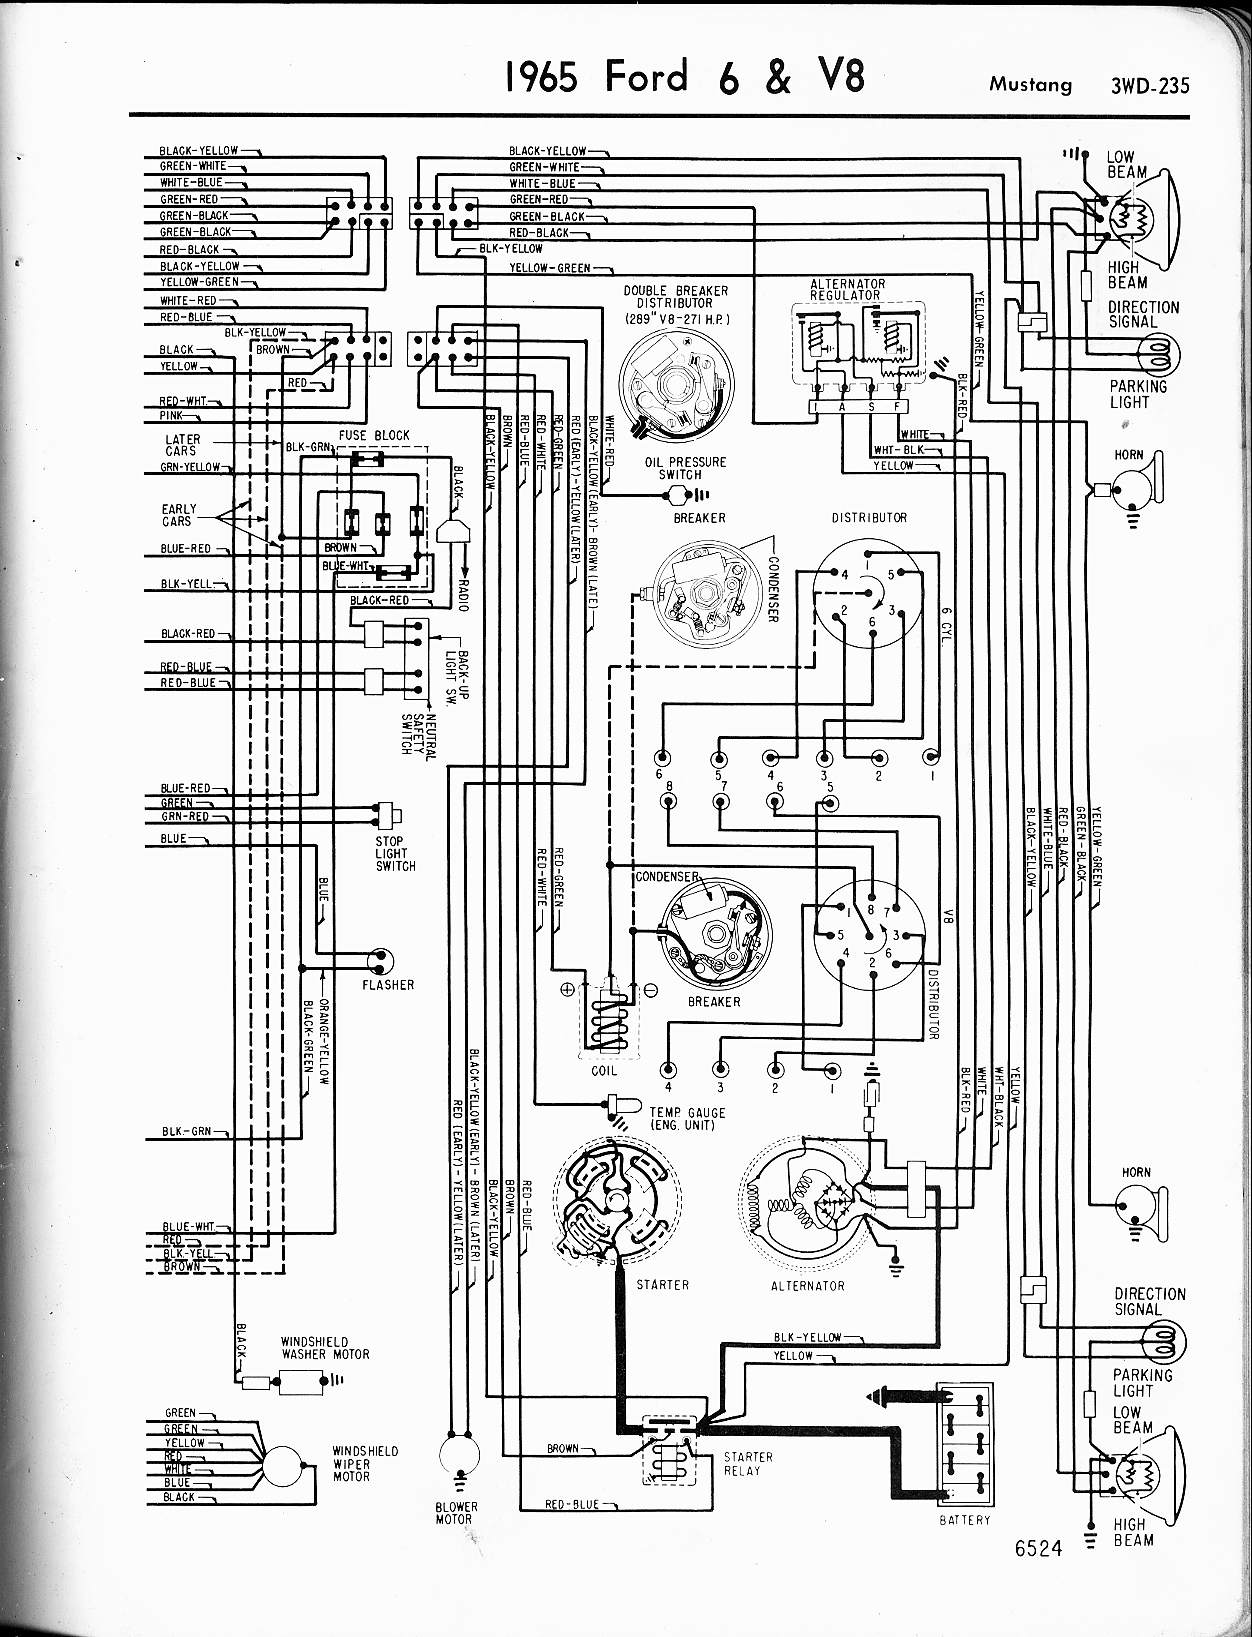 1969 mach 1 wiring diagram